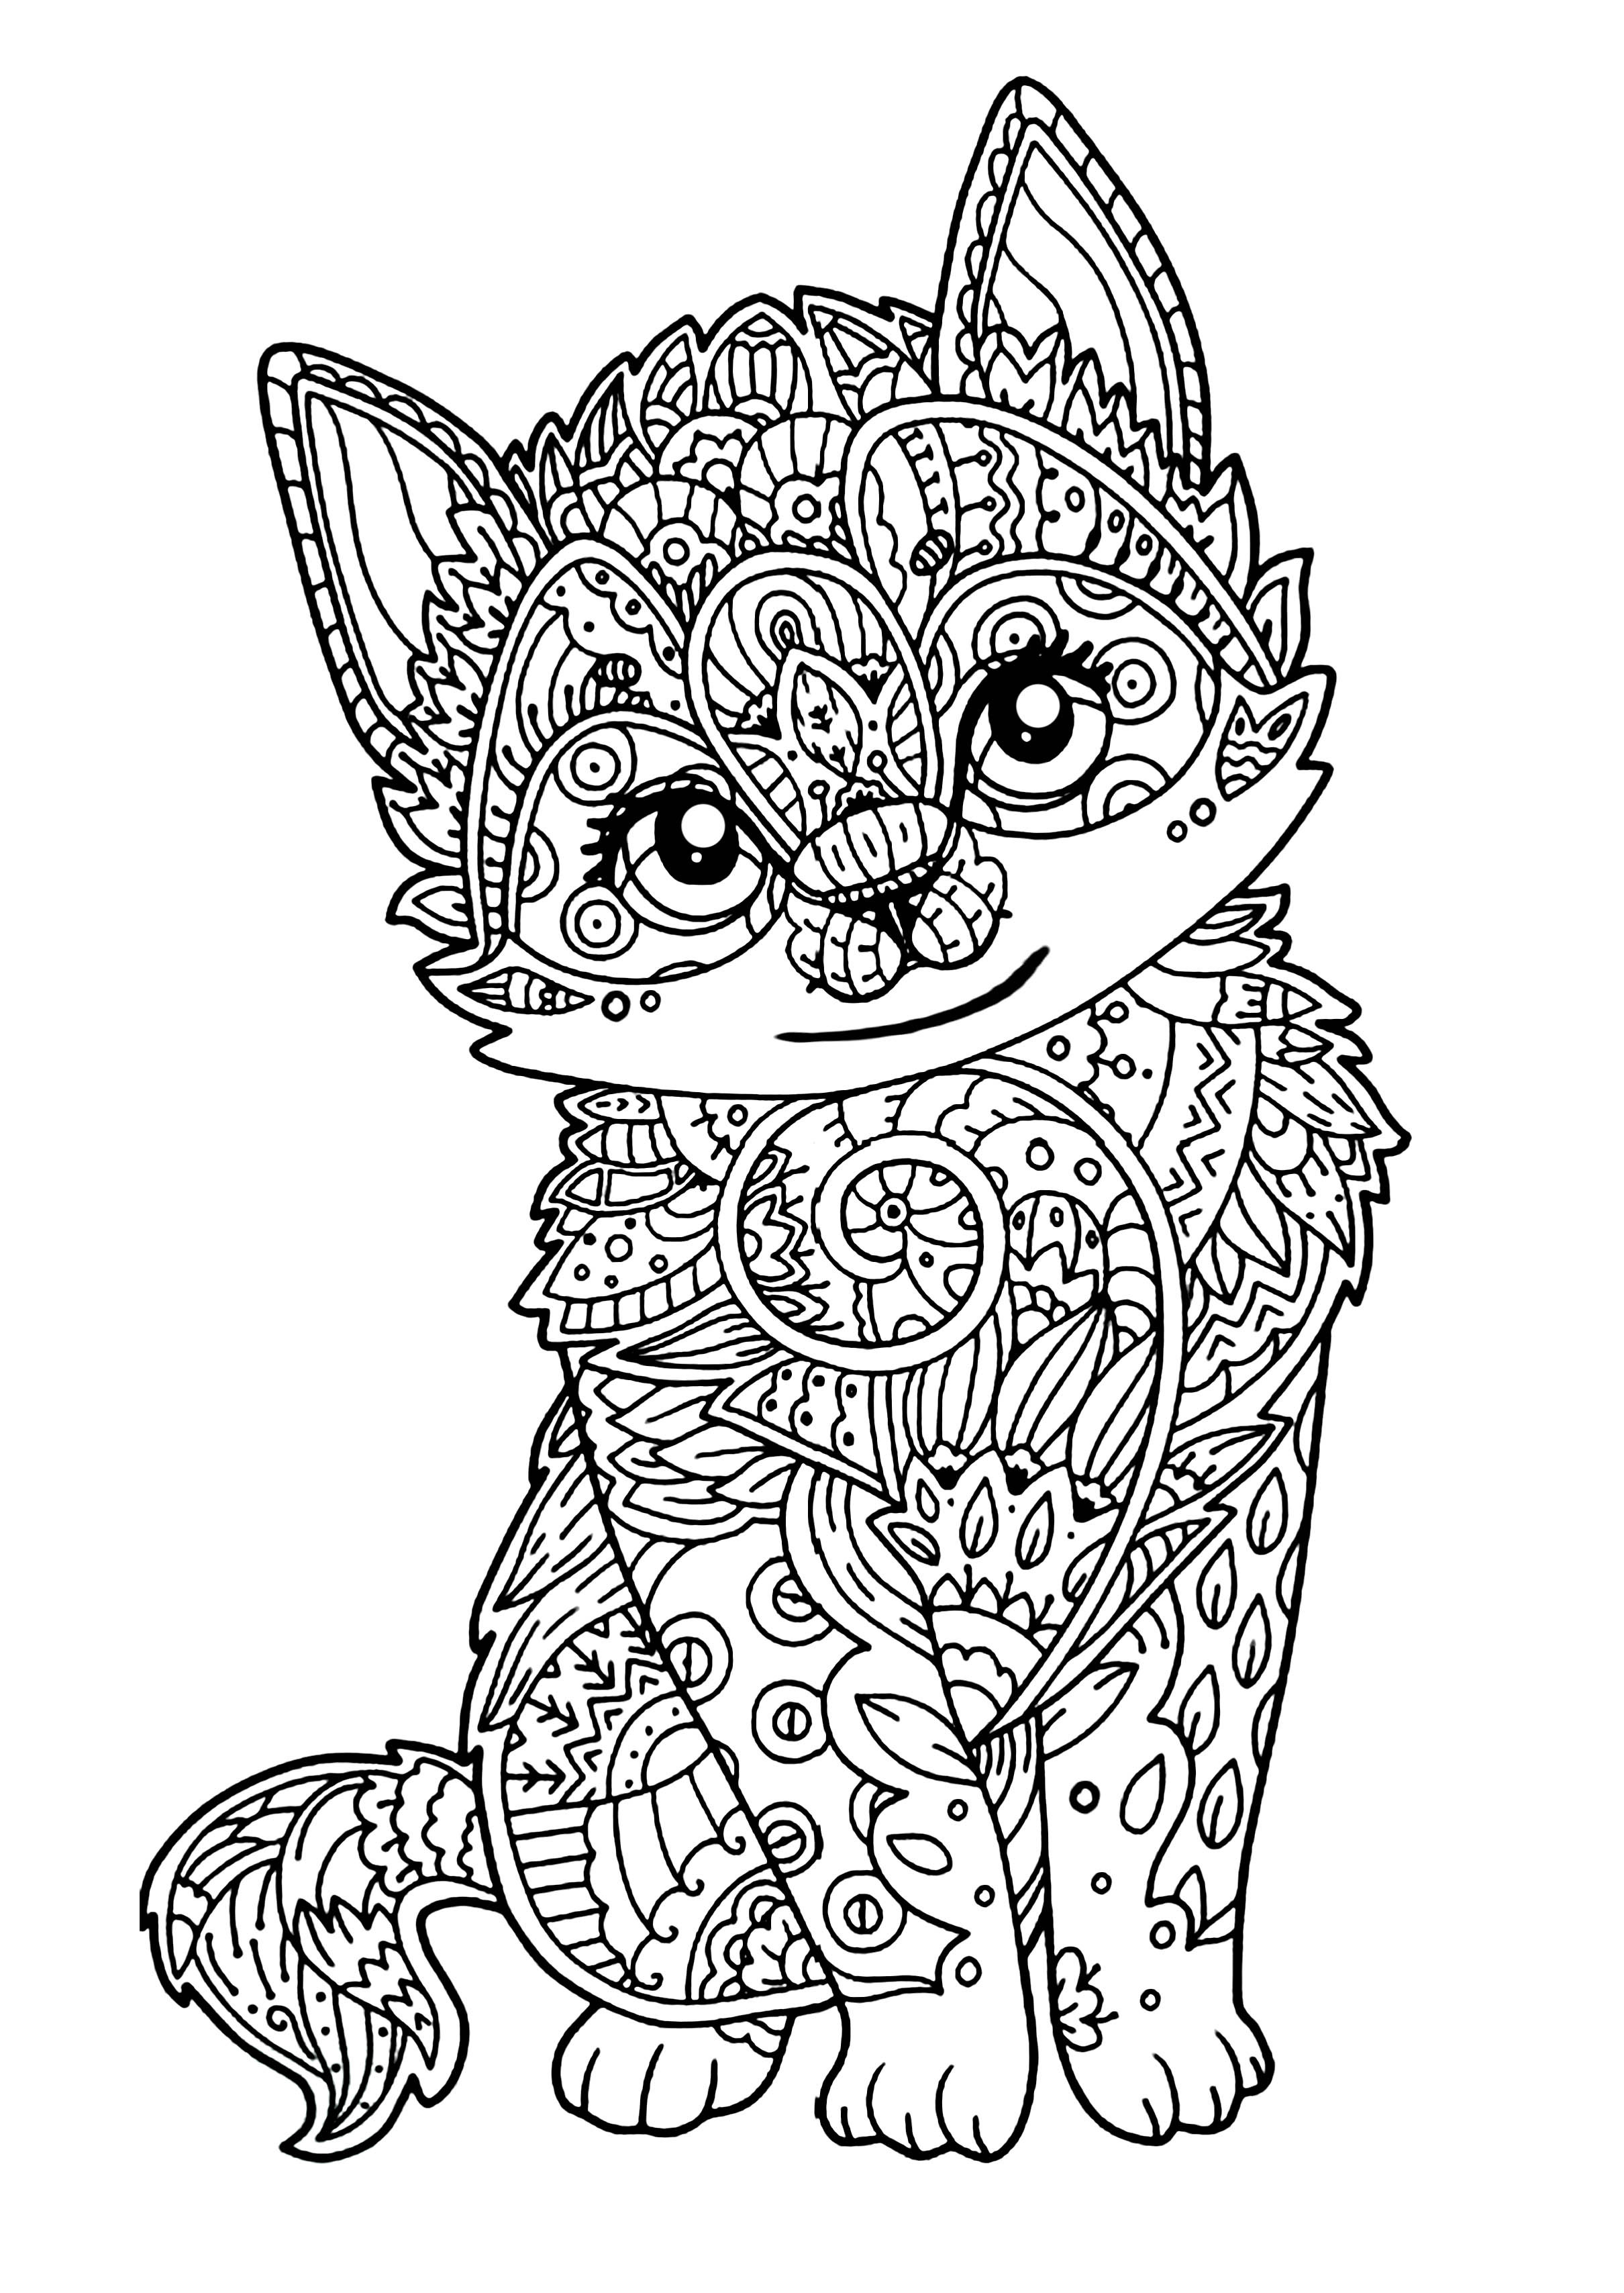 Best ideas about Cats Adult Coloring Books . Save or Pin Cute kitten Cats Adult Coloring Pages Now.